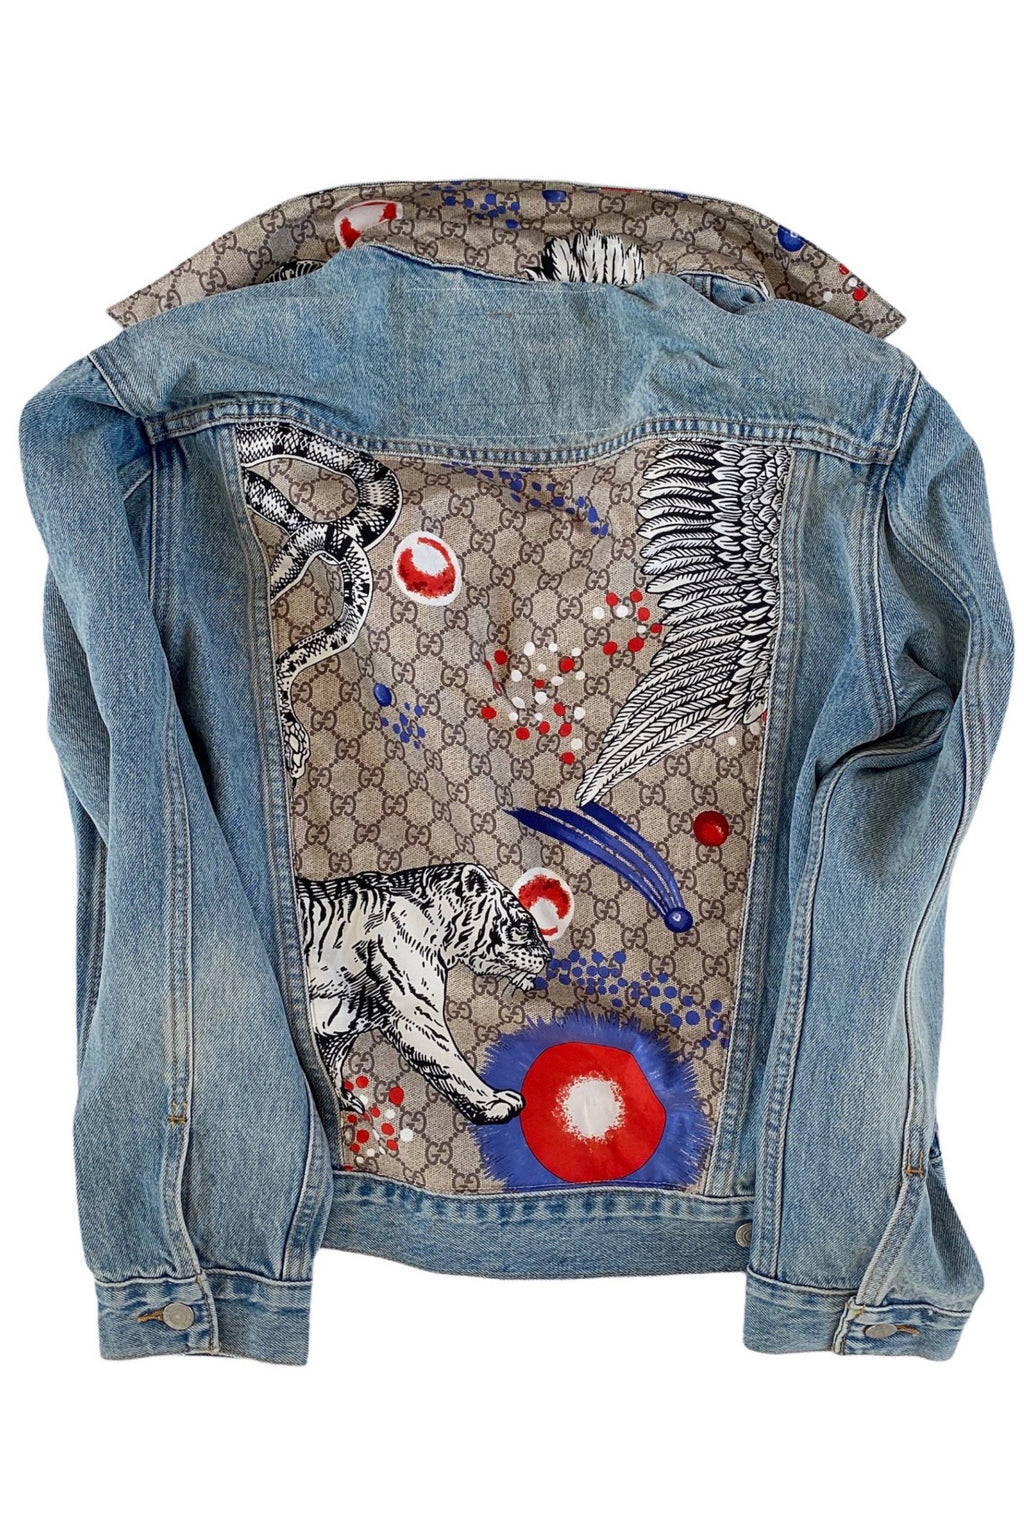 GUCCI GG MONOGRAM ANIMAL SCARF DENIM JACKET